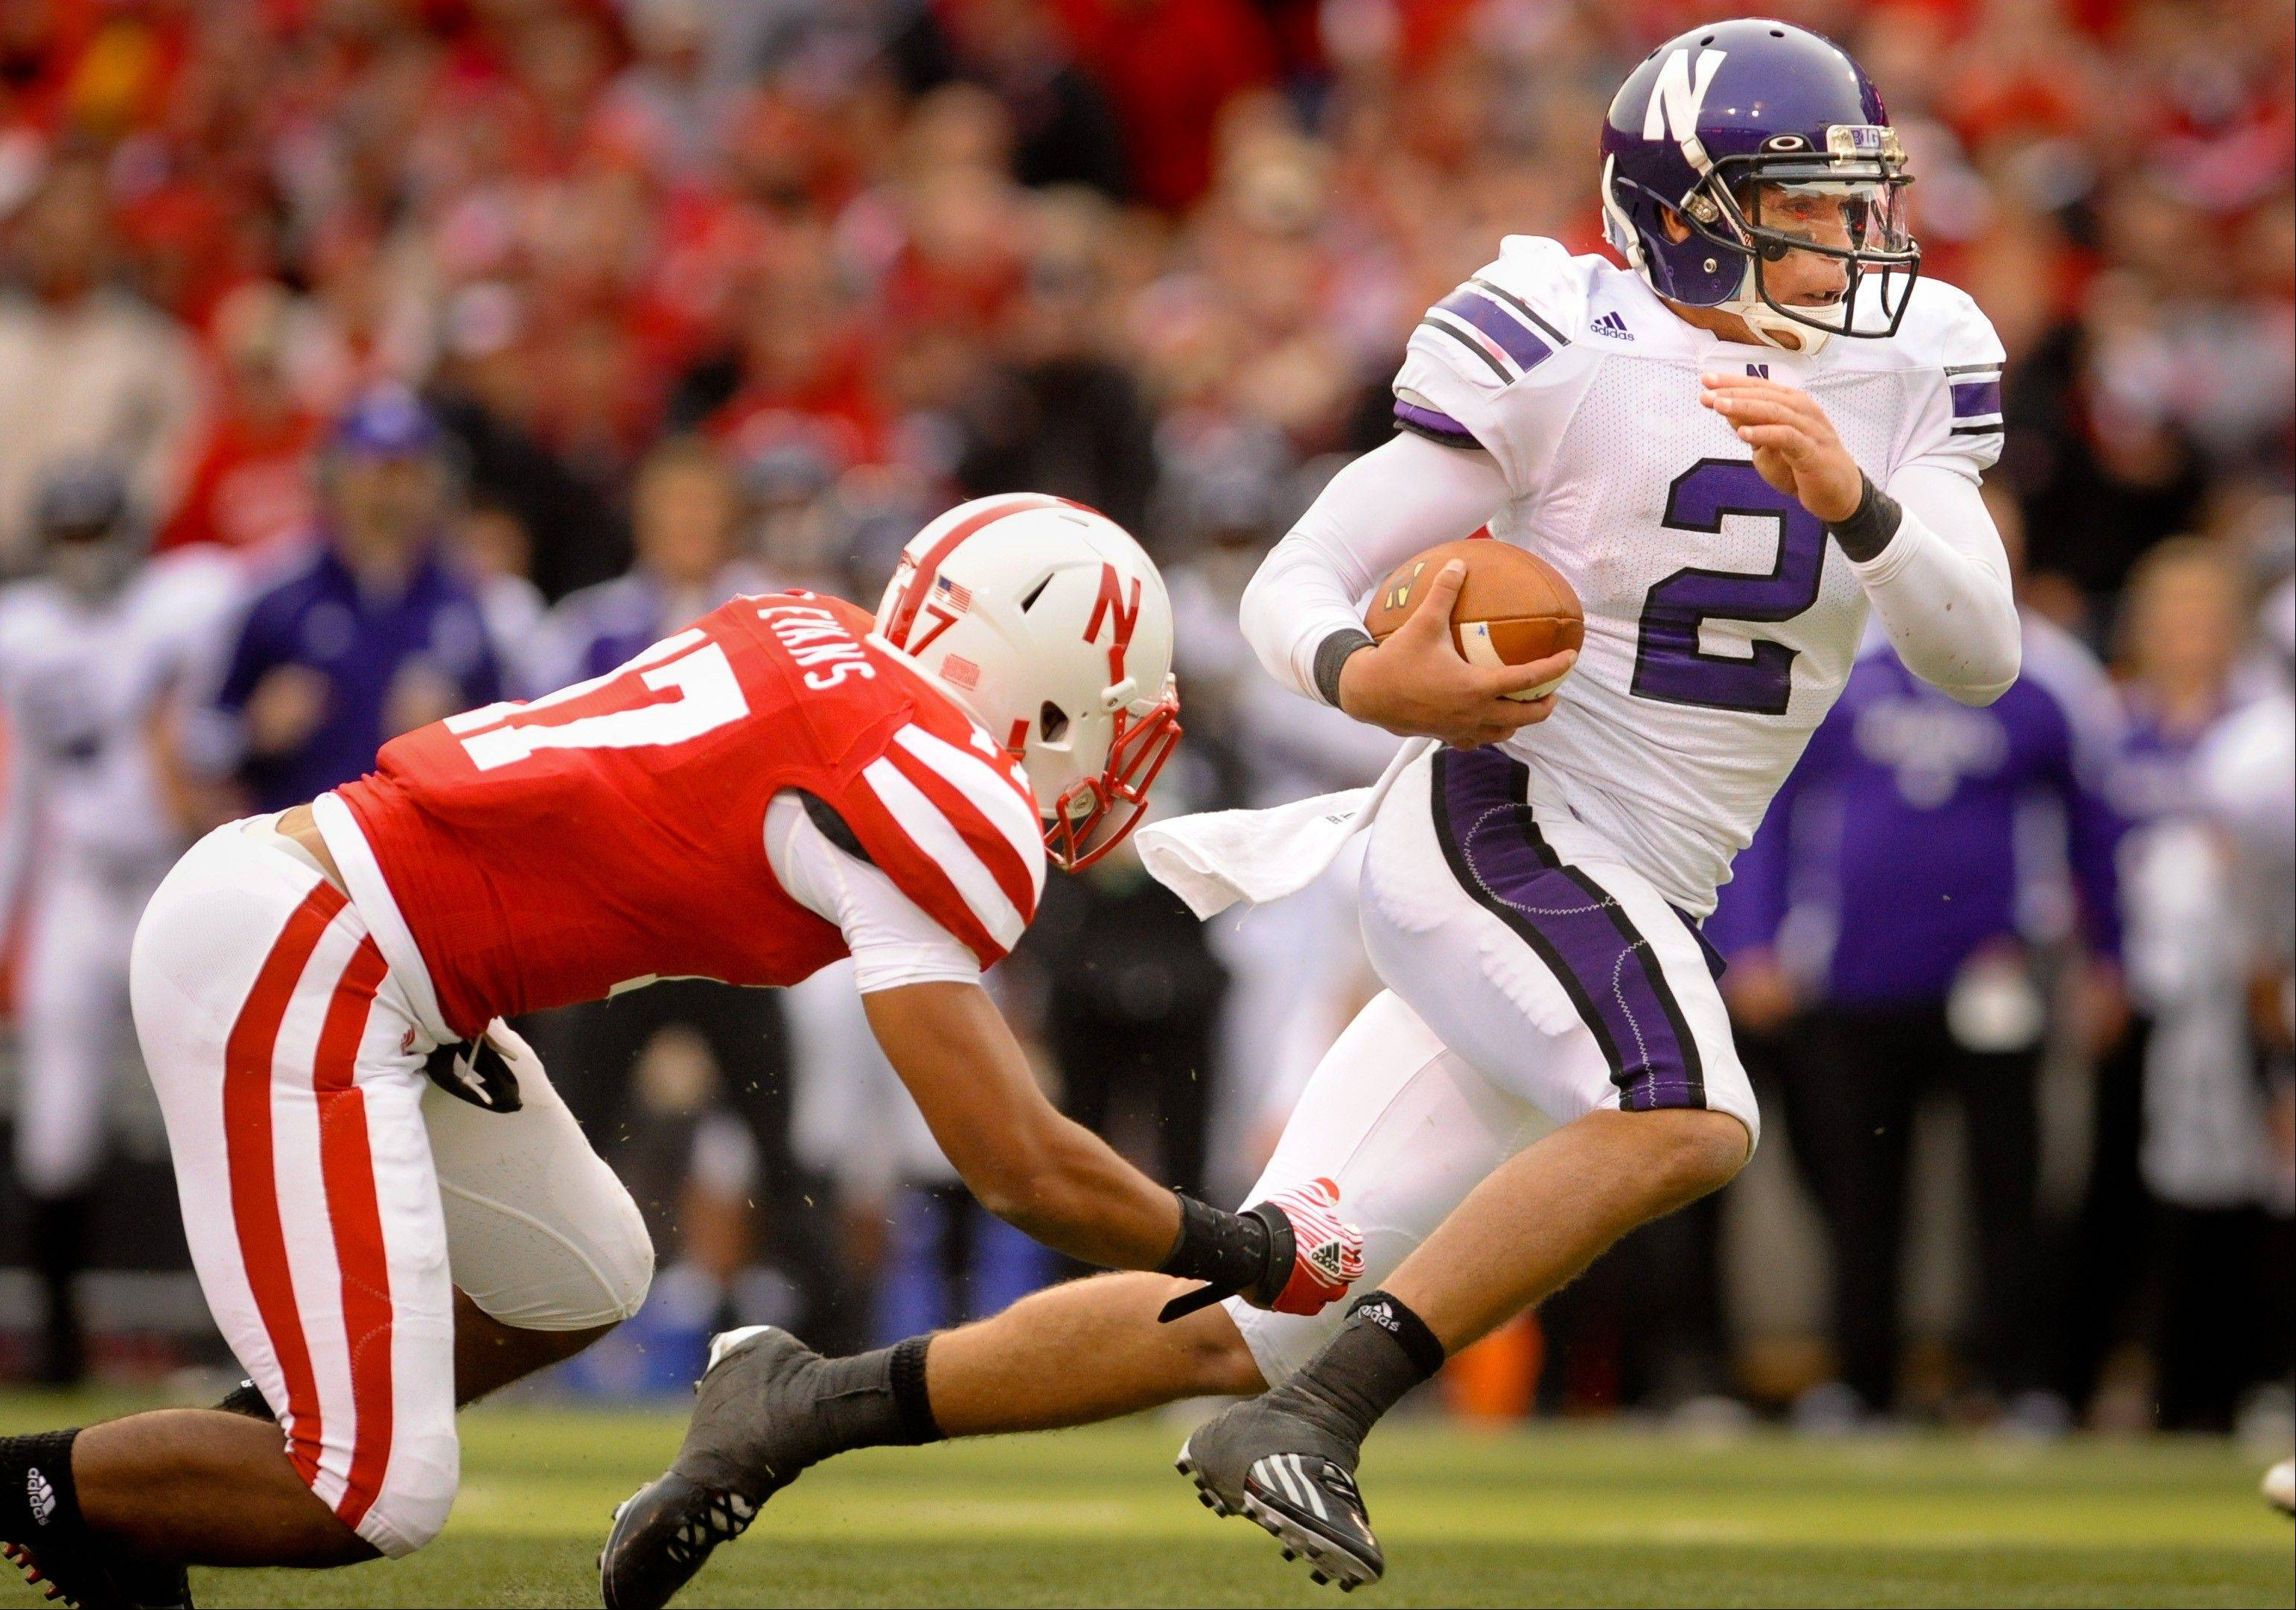 Northwestern's Kain Colter (2) slips by Nebraska's Ciante Evans (17) during an NCAA football game, Saturday Nov. 5, 2011, in Lincoln, Neb.